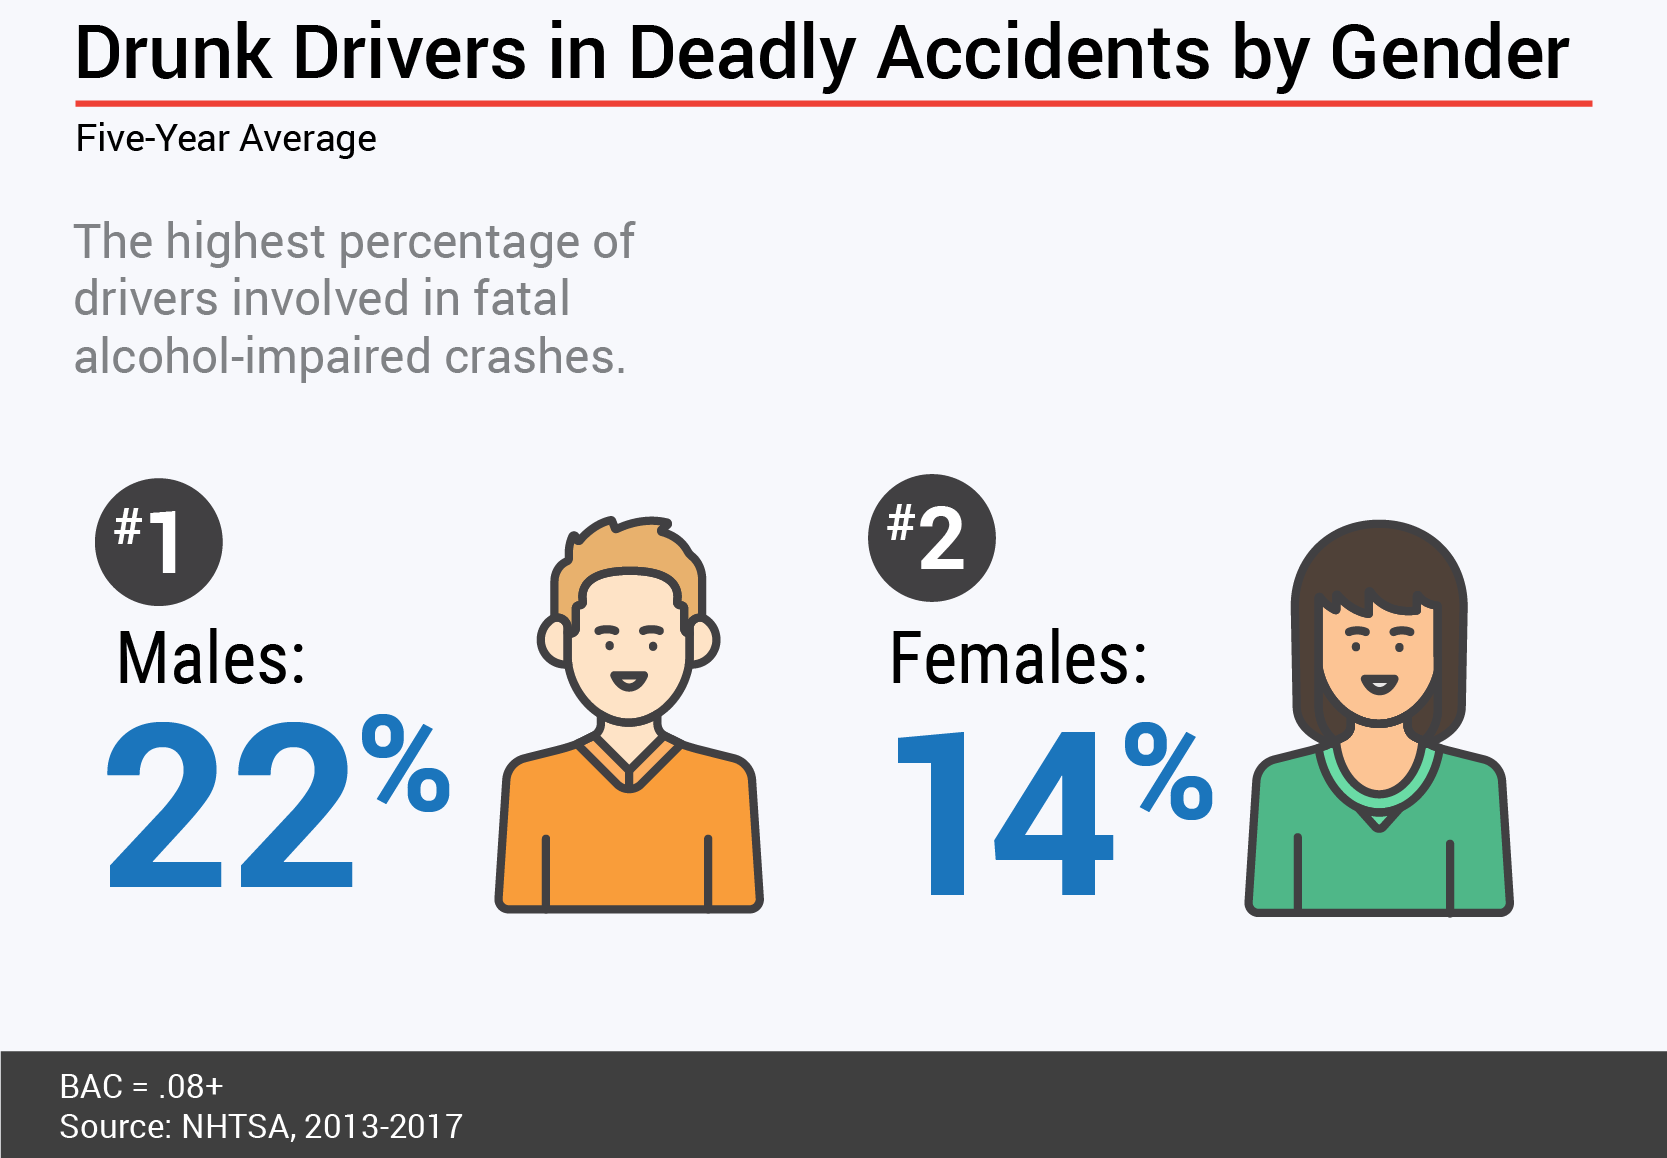 Drunk Driving Study - Fatal crashes by gender